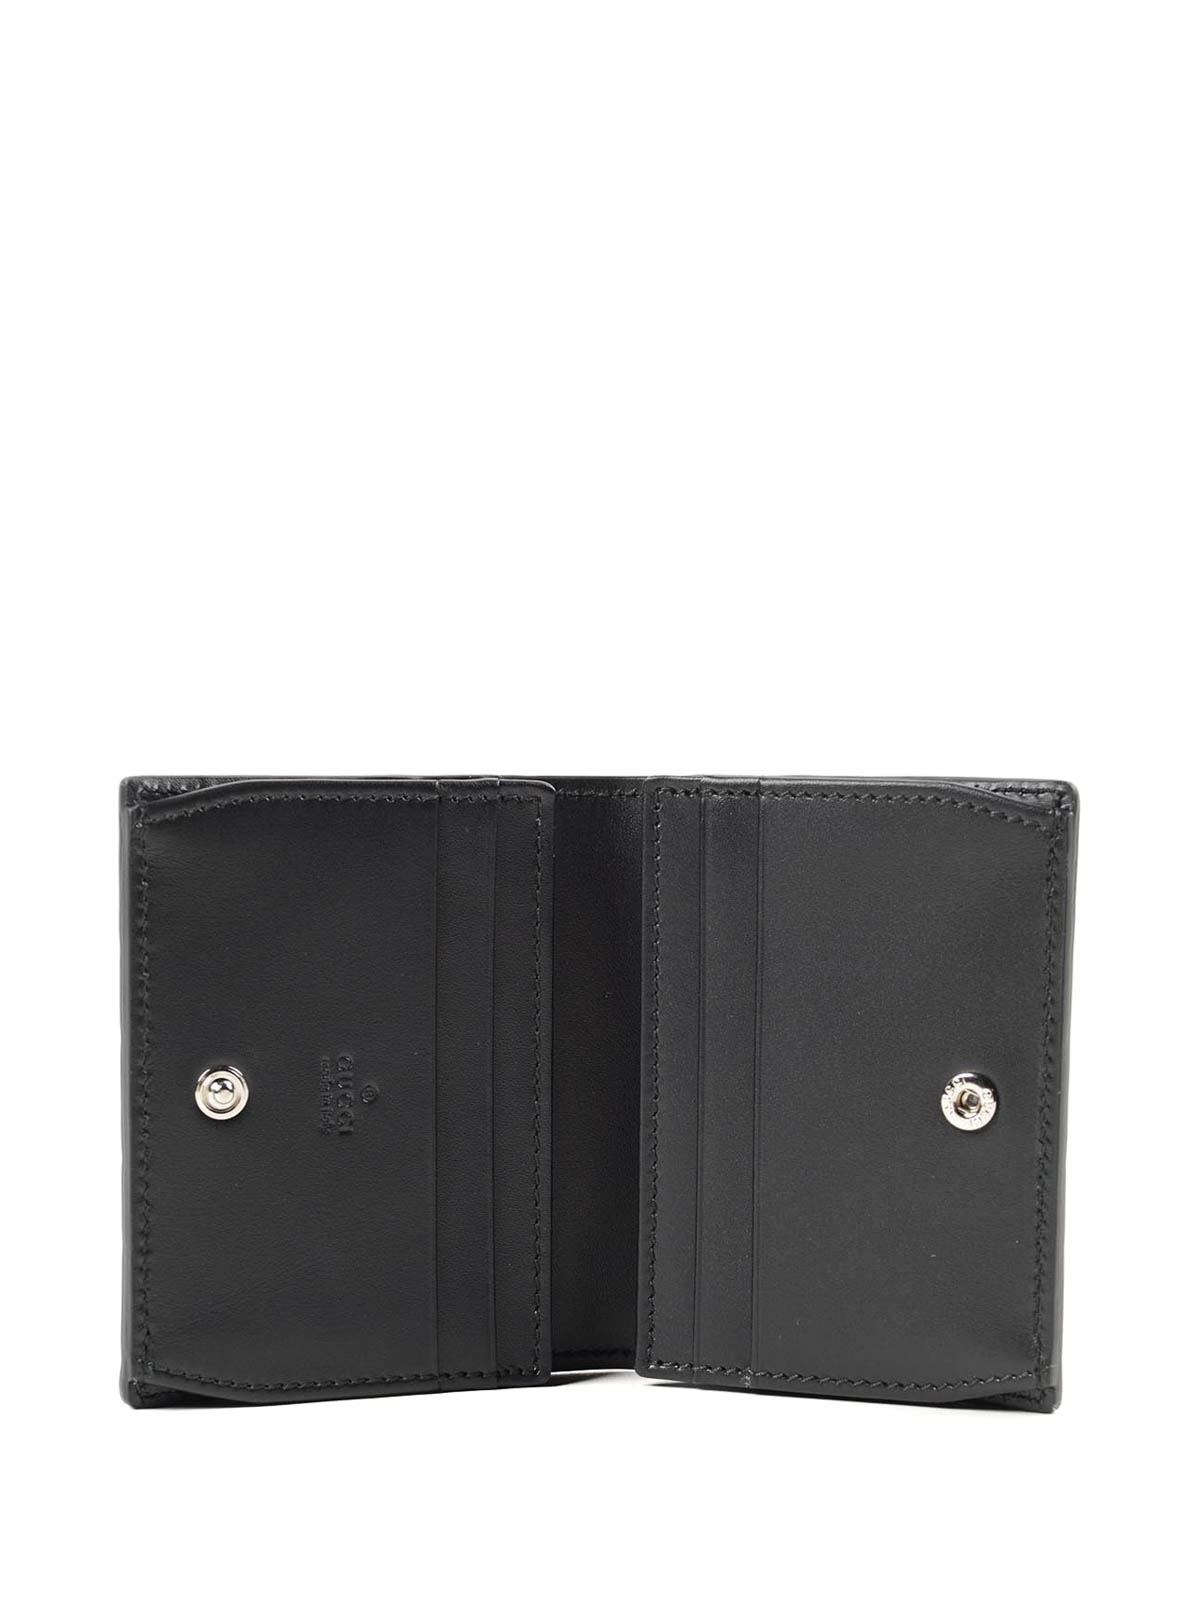 71f4cfb9f975d1 Gucci - GG embossed leather card holder - wallets & purses ...